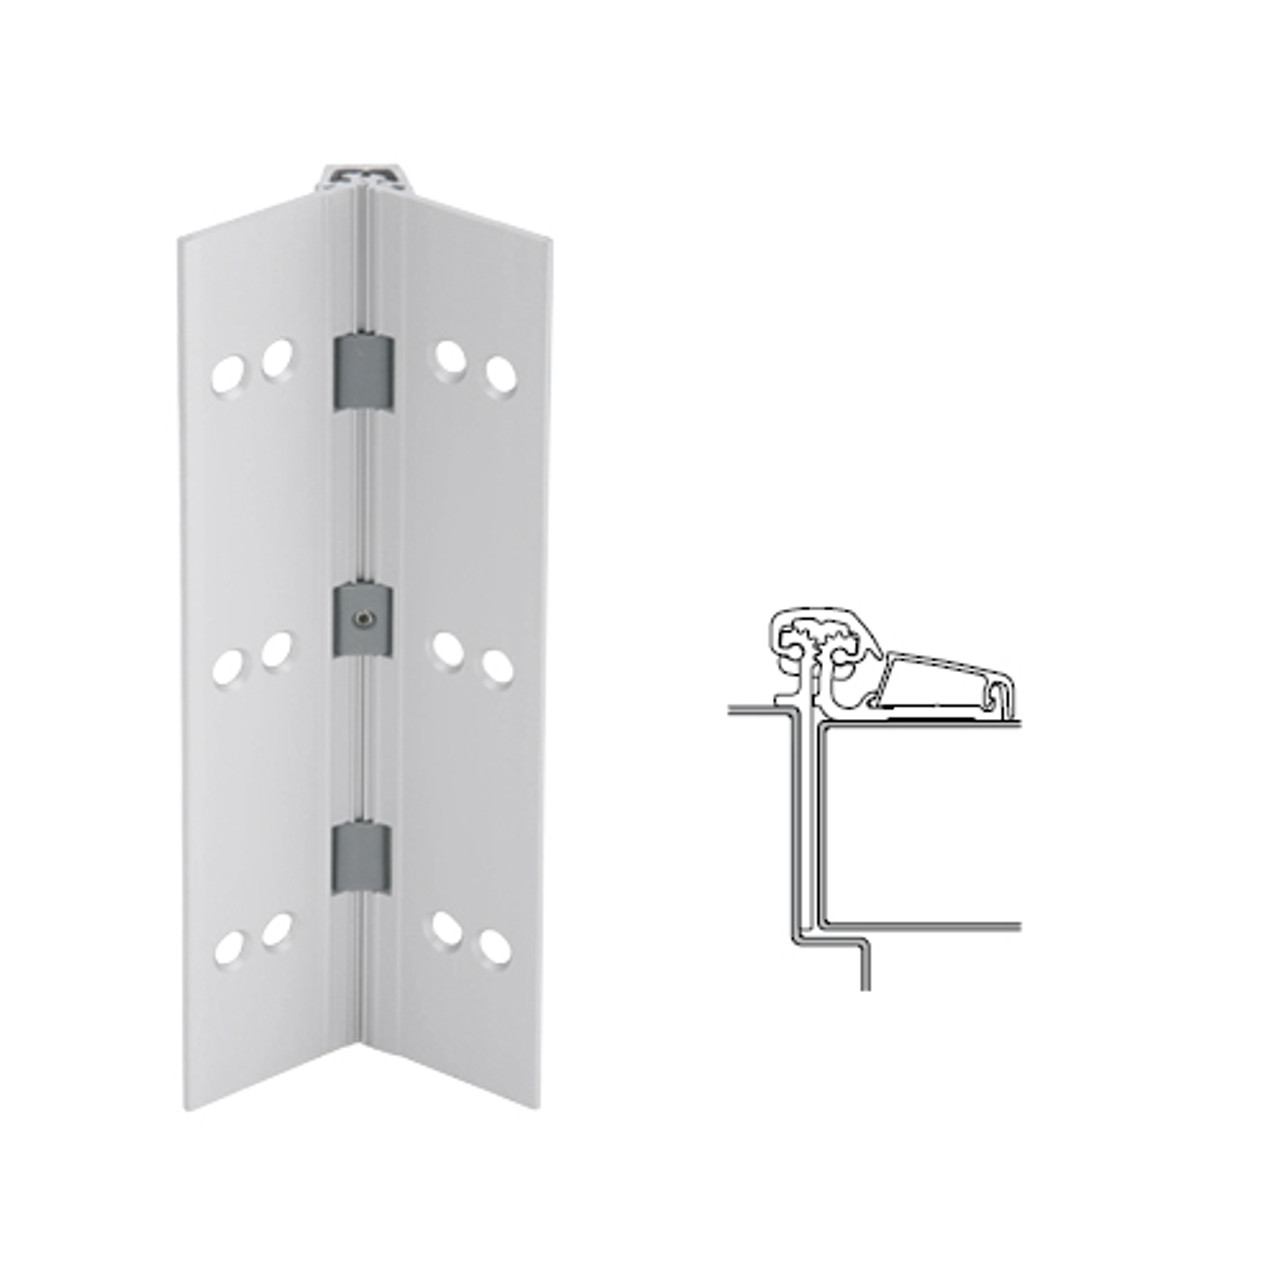 054XY-US28-83-SECWDHM IVES Adjustable Half Surface Continuous Geared Hinges with Security Screws - Hex Pin Drive in Satin Aluminum